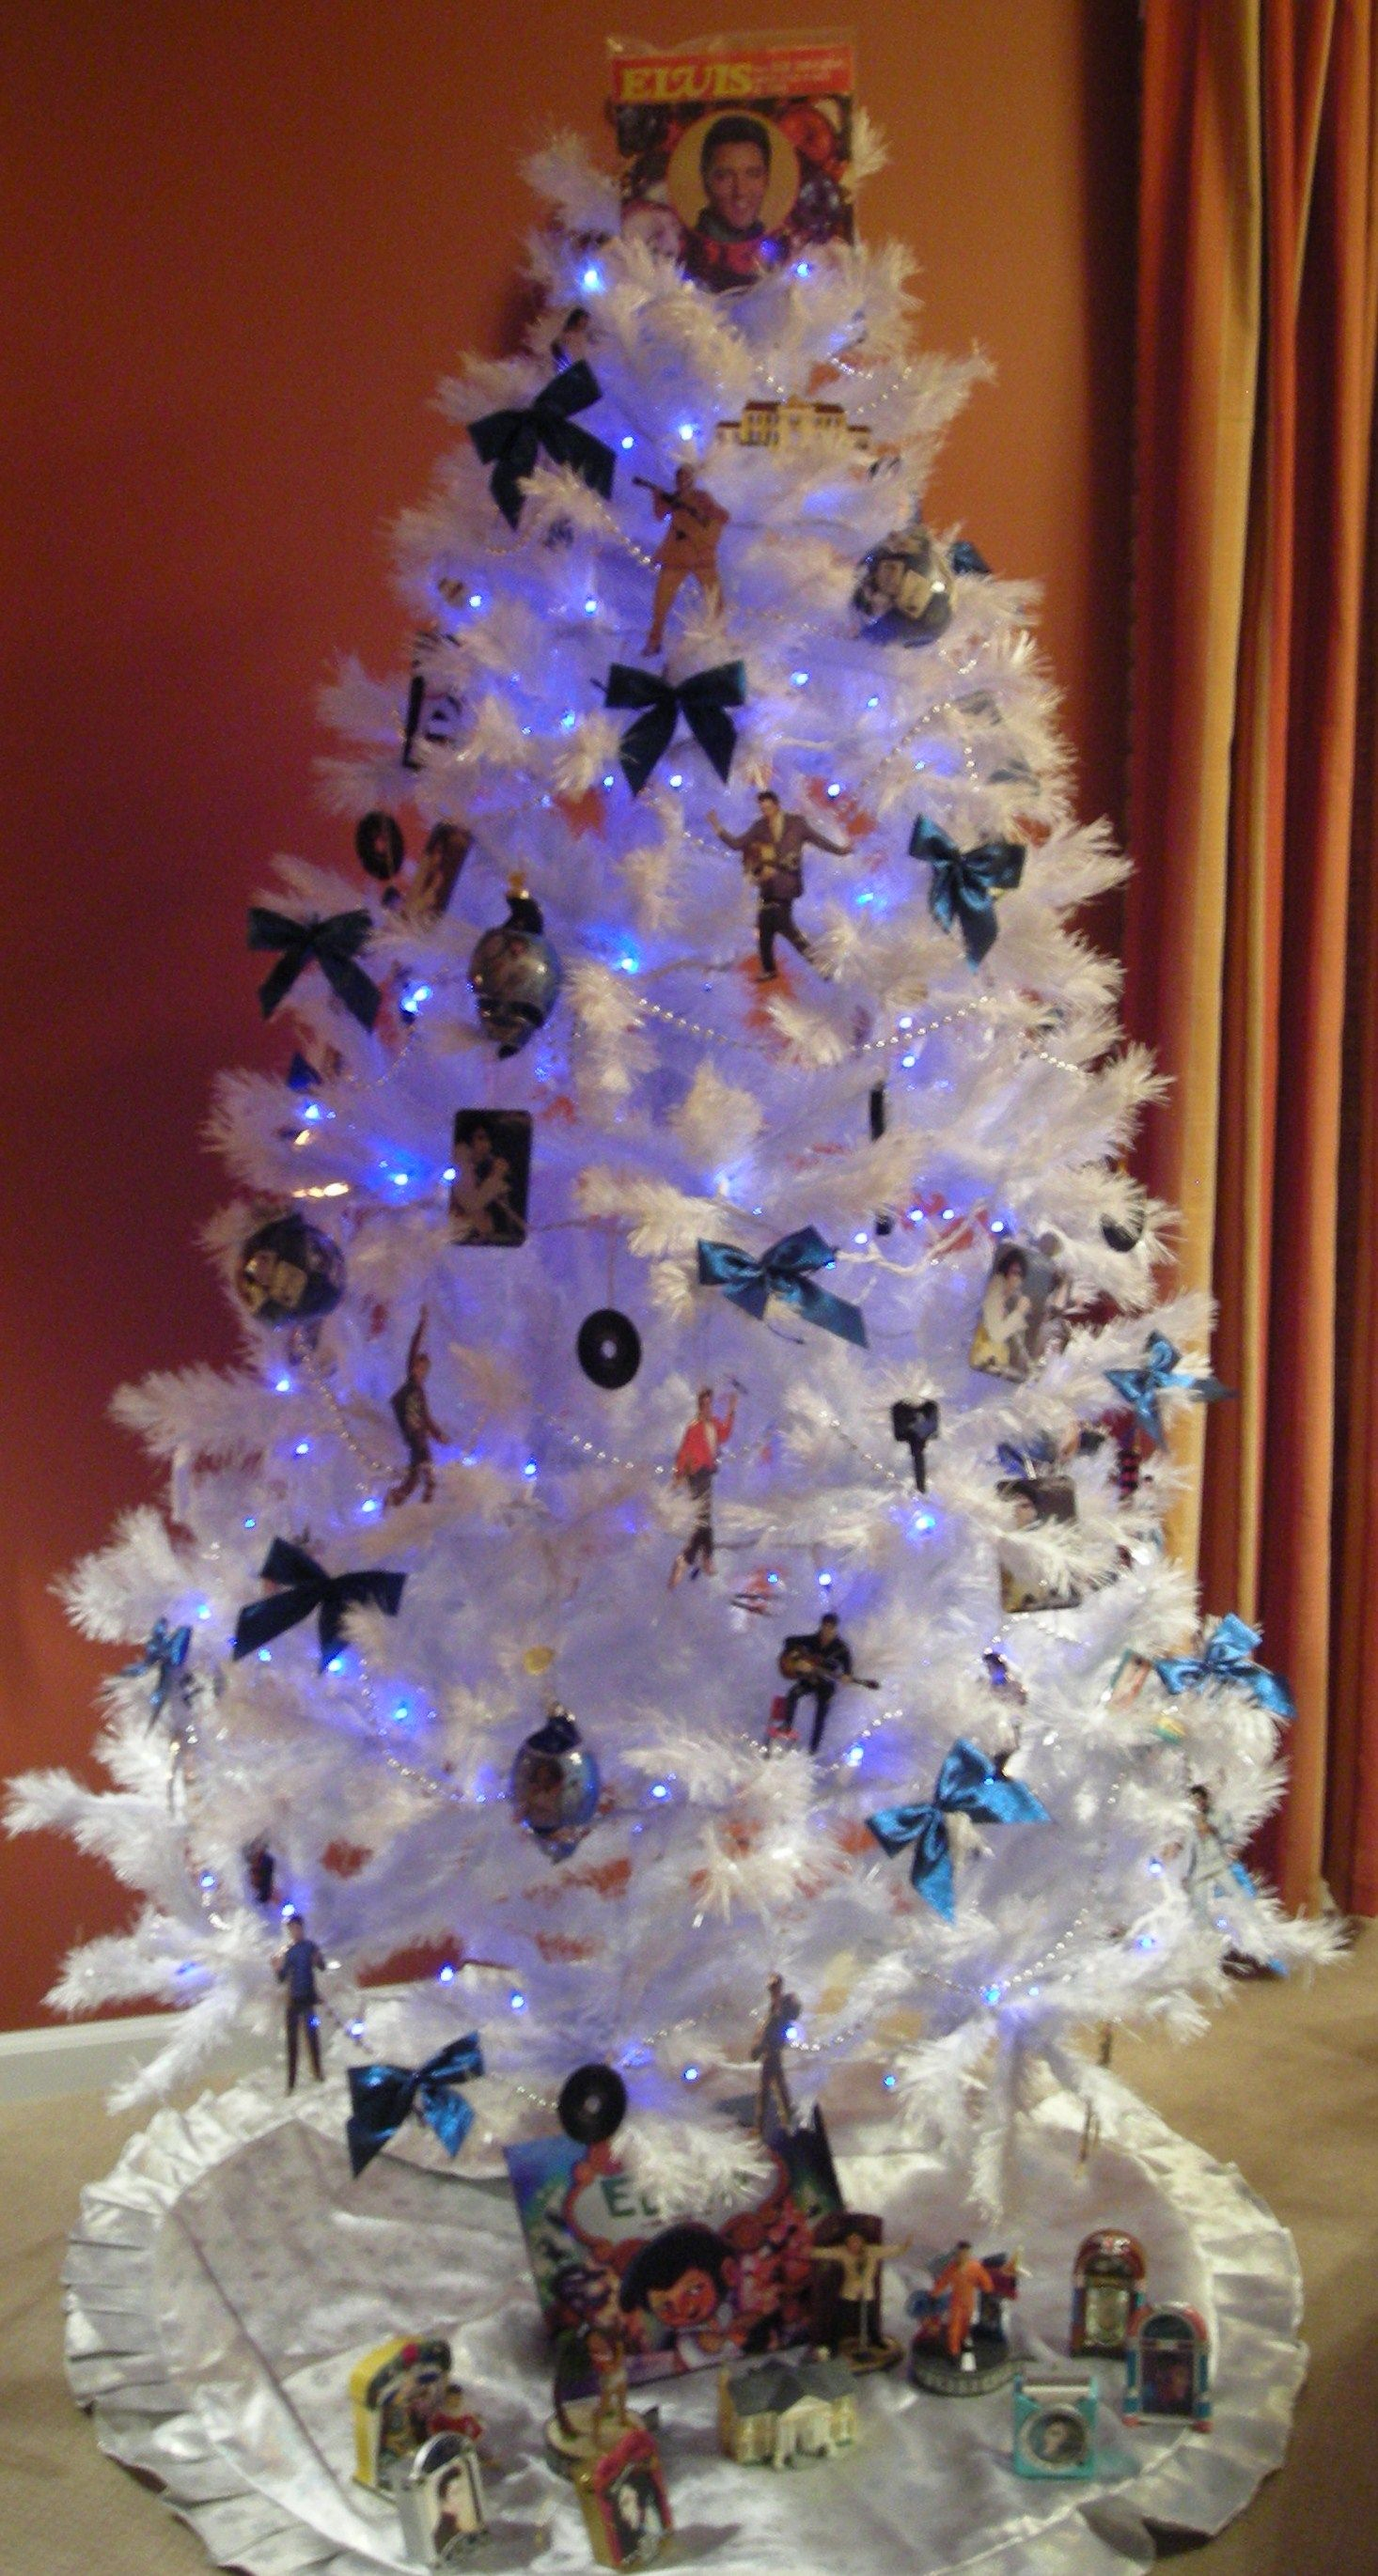 Elvis Themed Christmas Tree Christmas Tree Themes Christmas Tree Holiday Christmas Tree